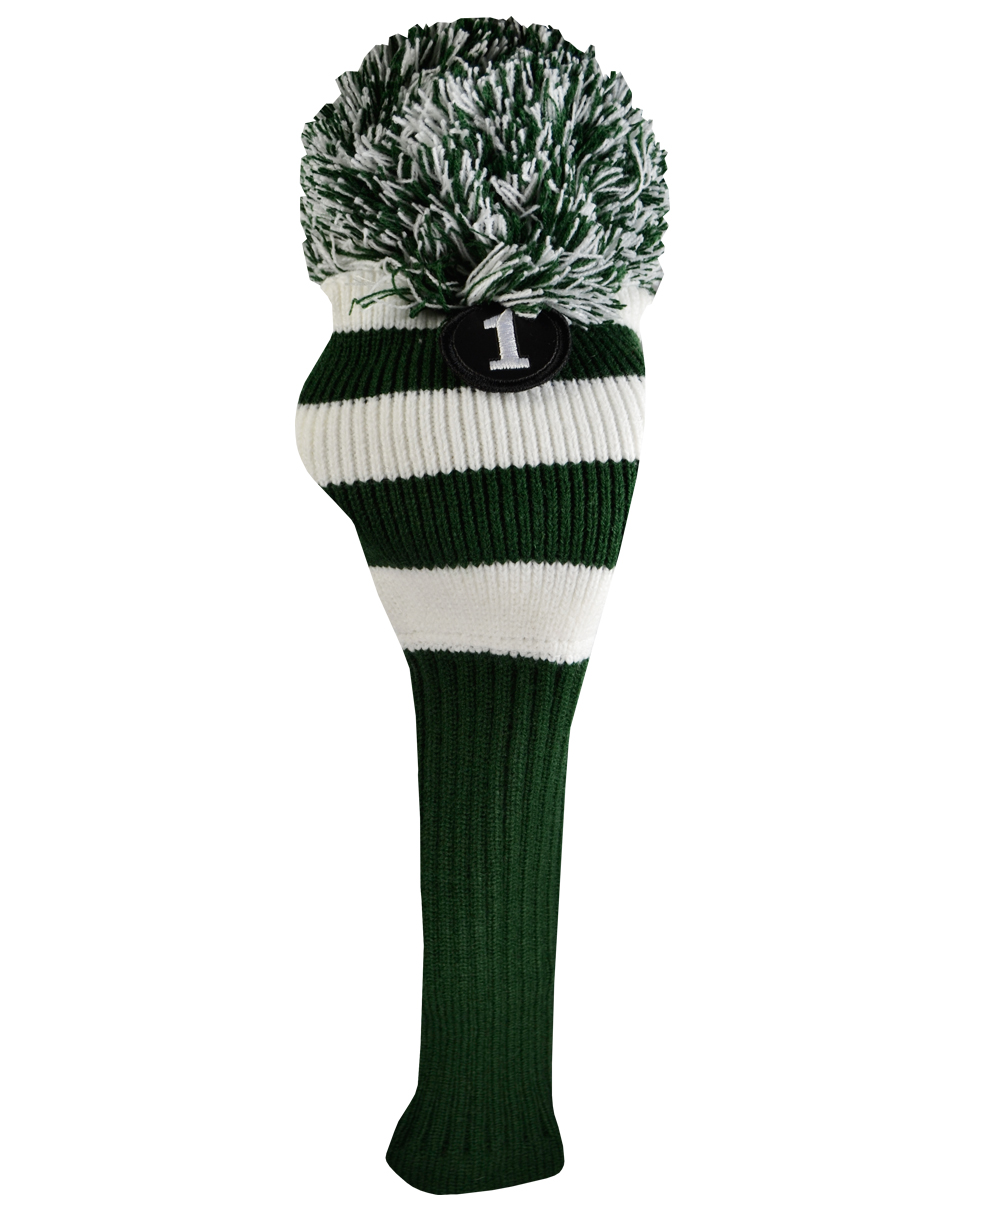 Ray Cook Pom Pom Knit Driver Head Cover By Ray Cook Golf